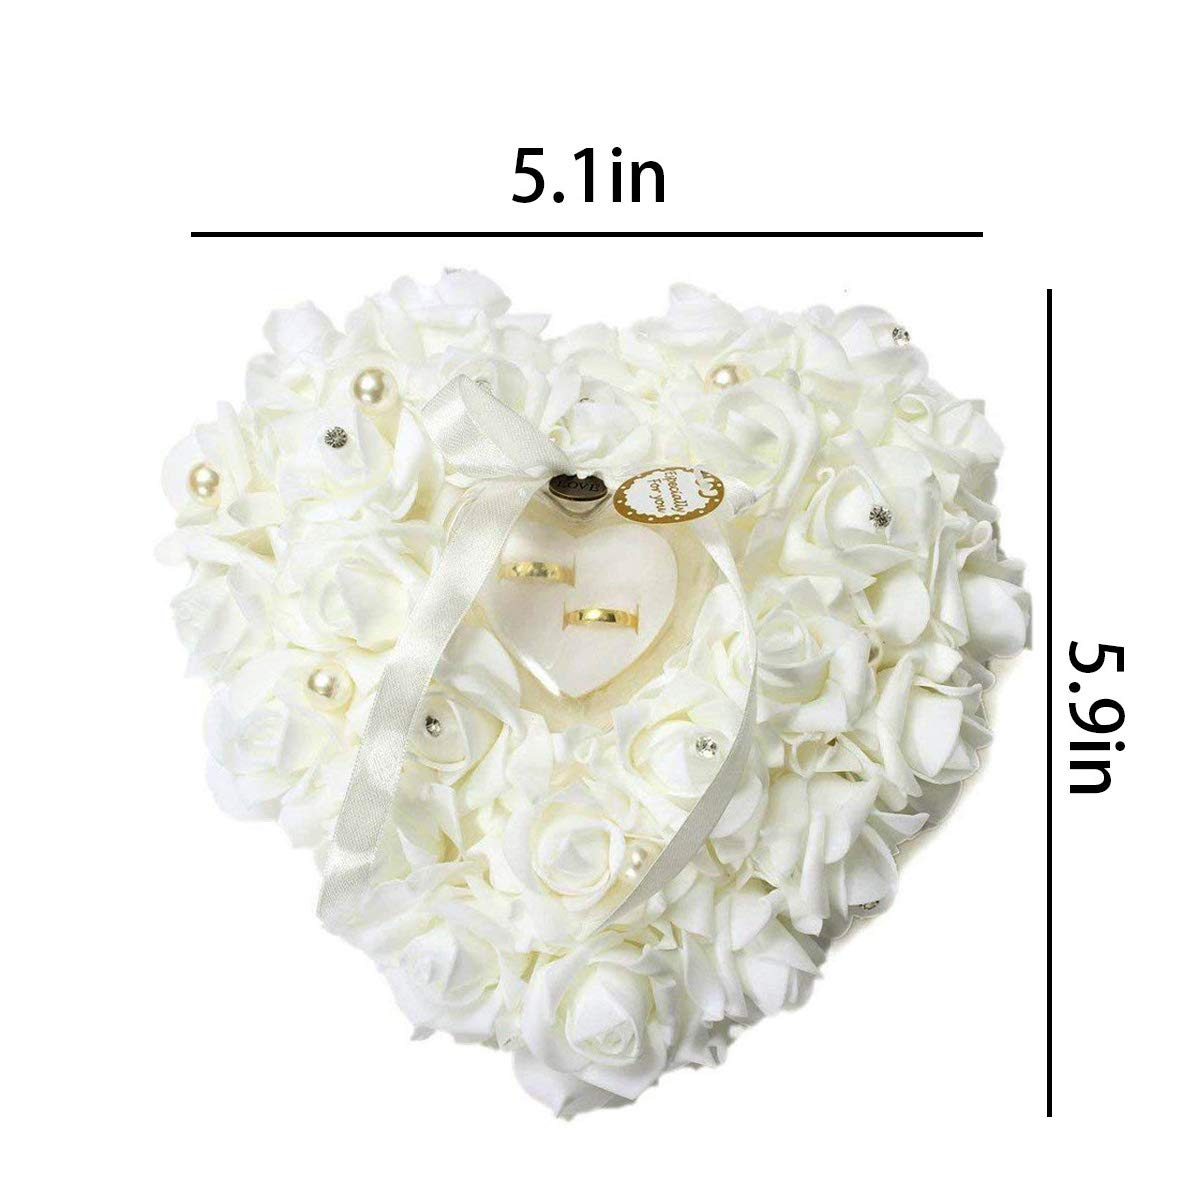 mossty Wedding Ring Pillow,Rose Heart Ring Box Wedding Accessories White Ring Pillow Wedding Lace Crystal by mossty (Image #3)